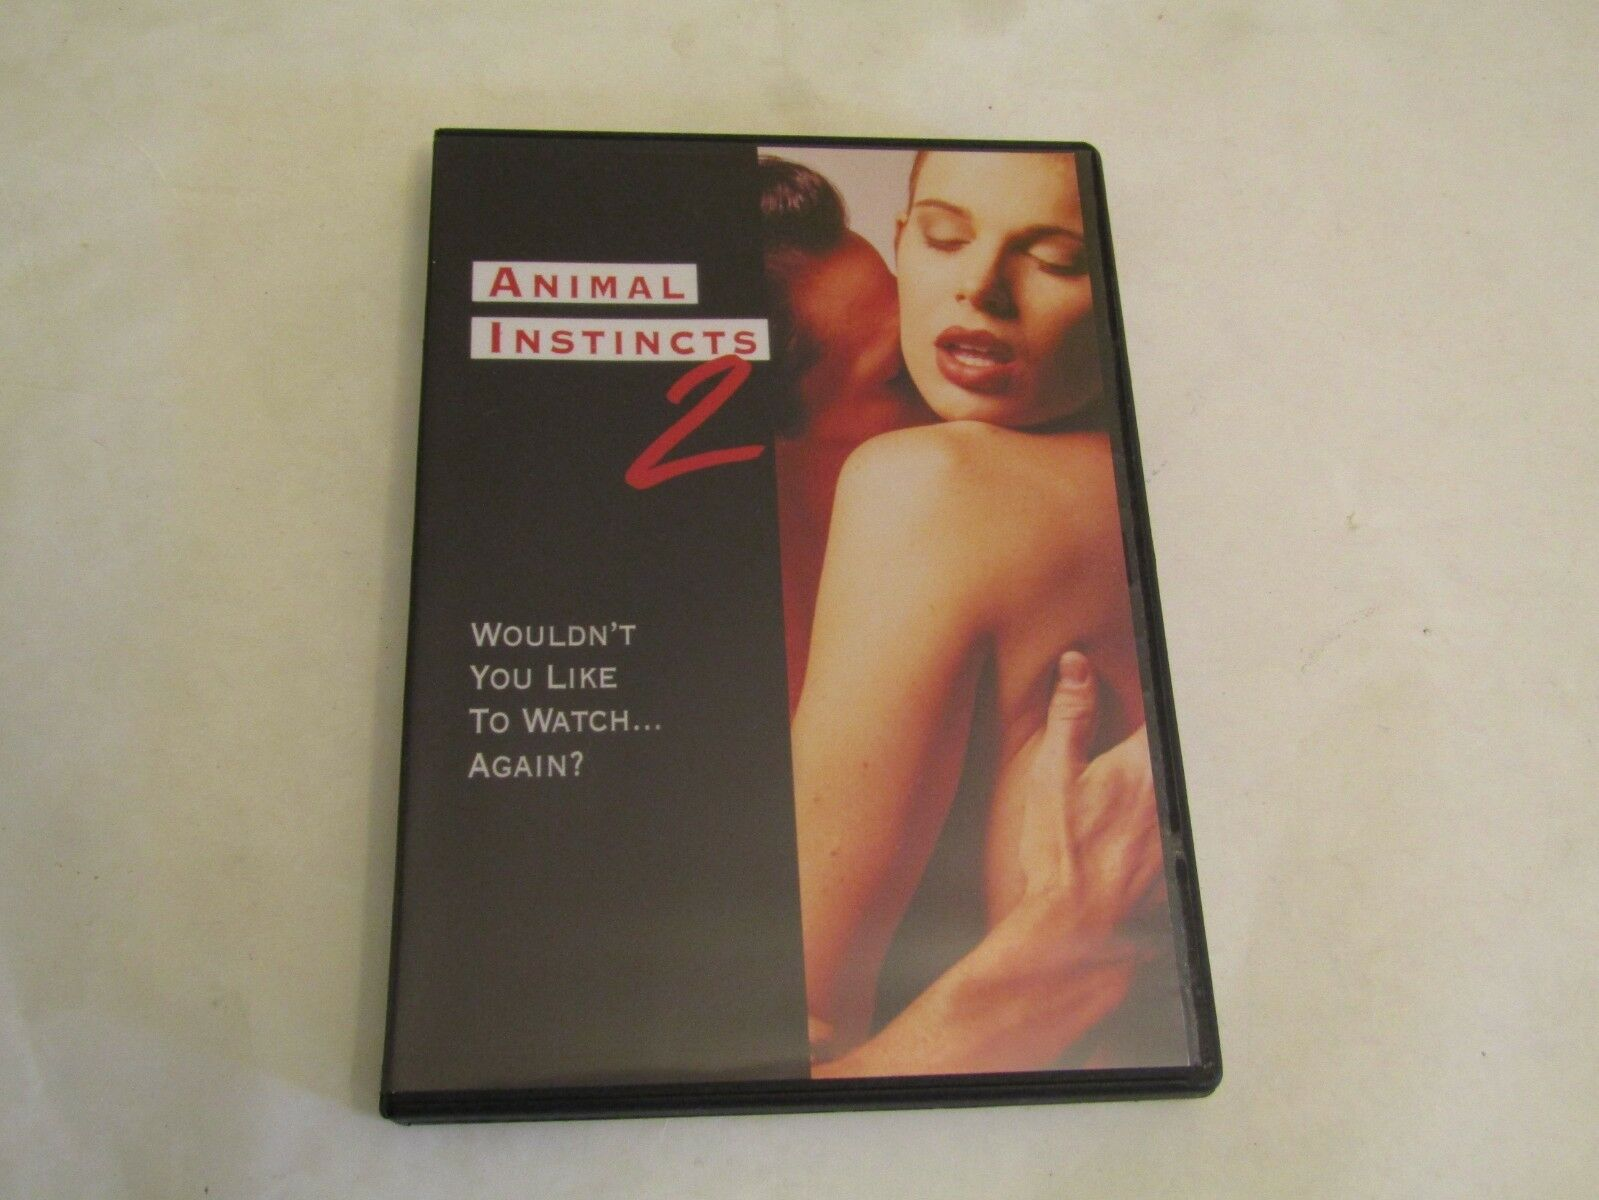 Animal Instincts 2 Shannon Whirry Dvd Drama Rare For Sale Online